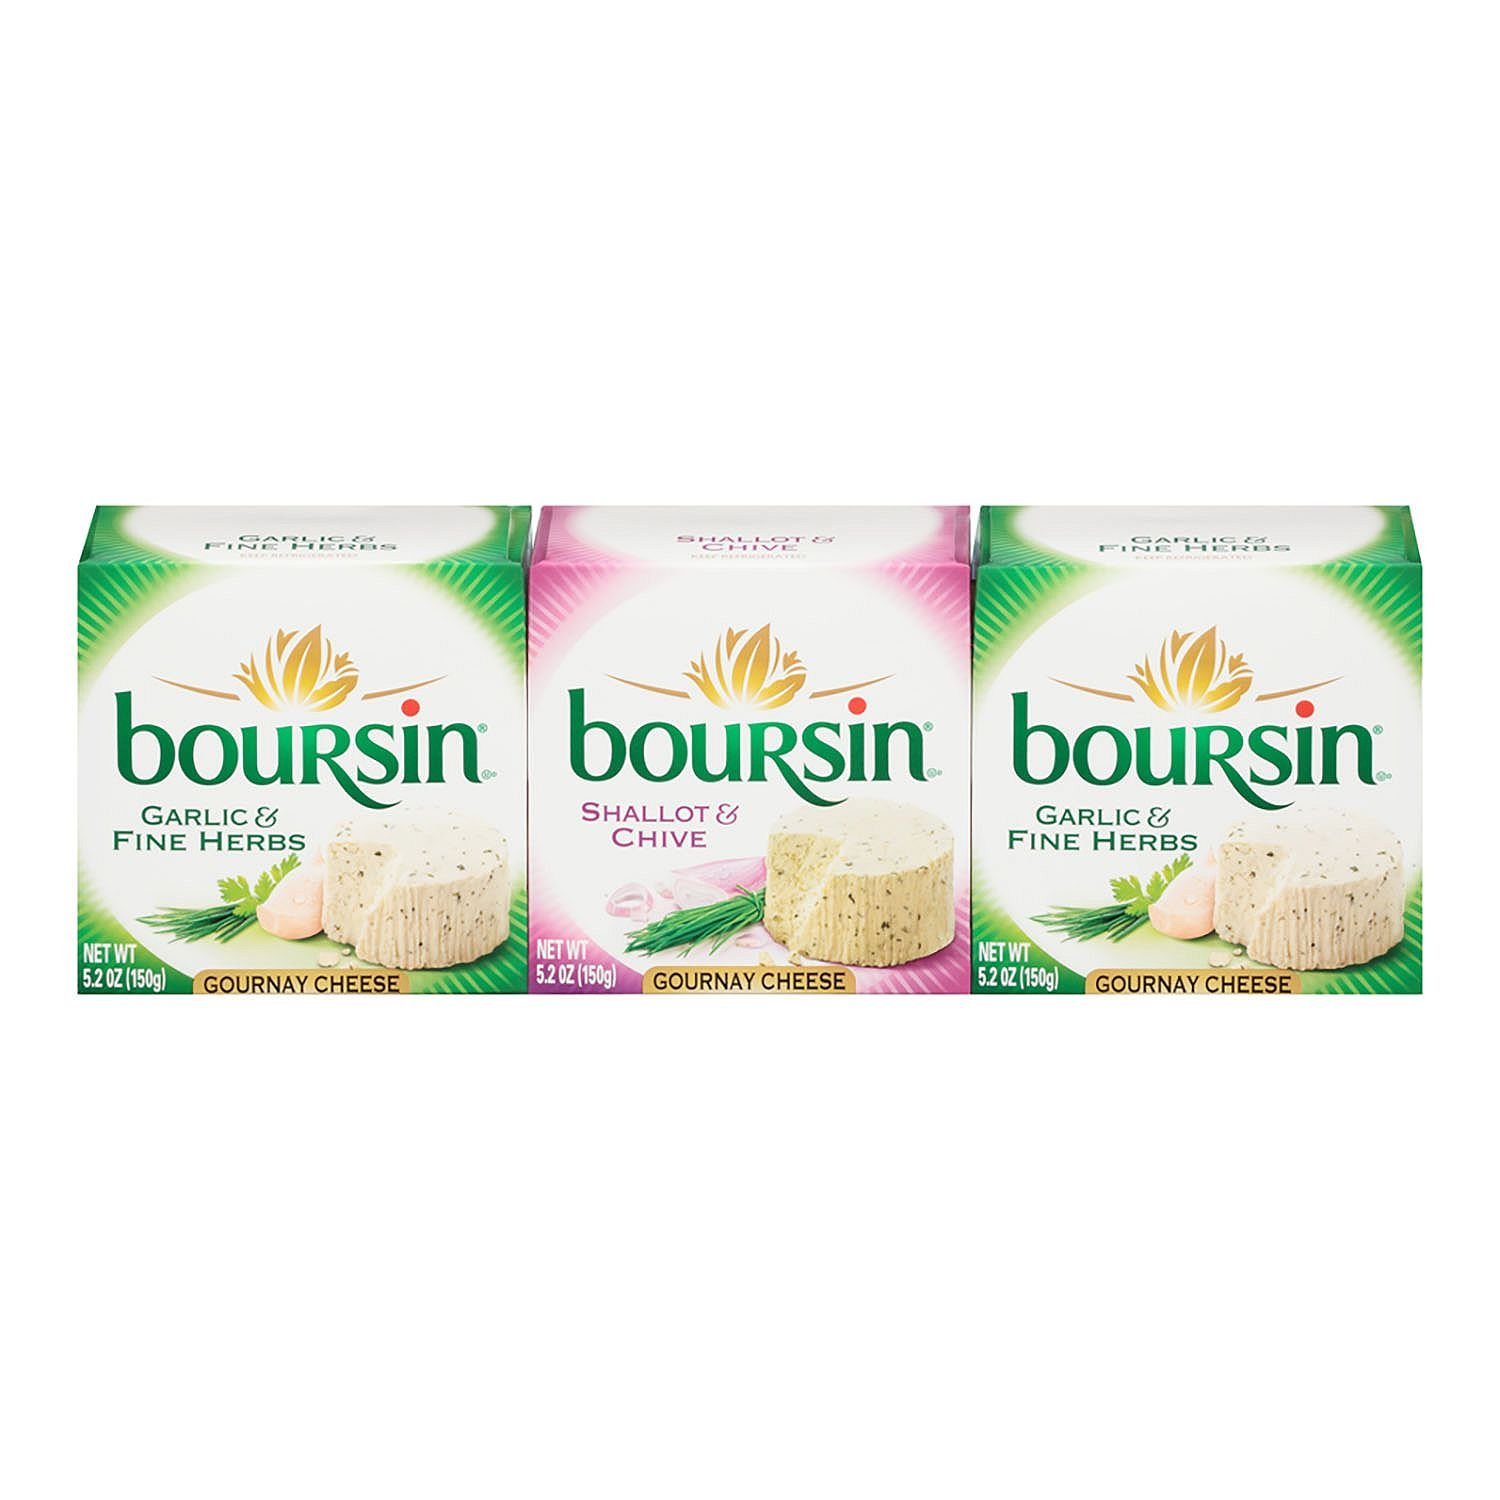 Boursin Garlic Herb and Shallot Chive Cheese (5.2 oz. each, 3 pk.) by Boursin